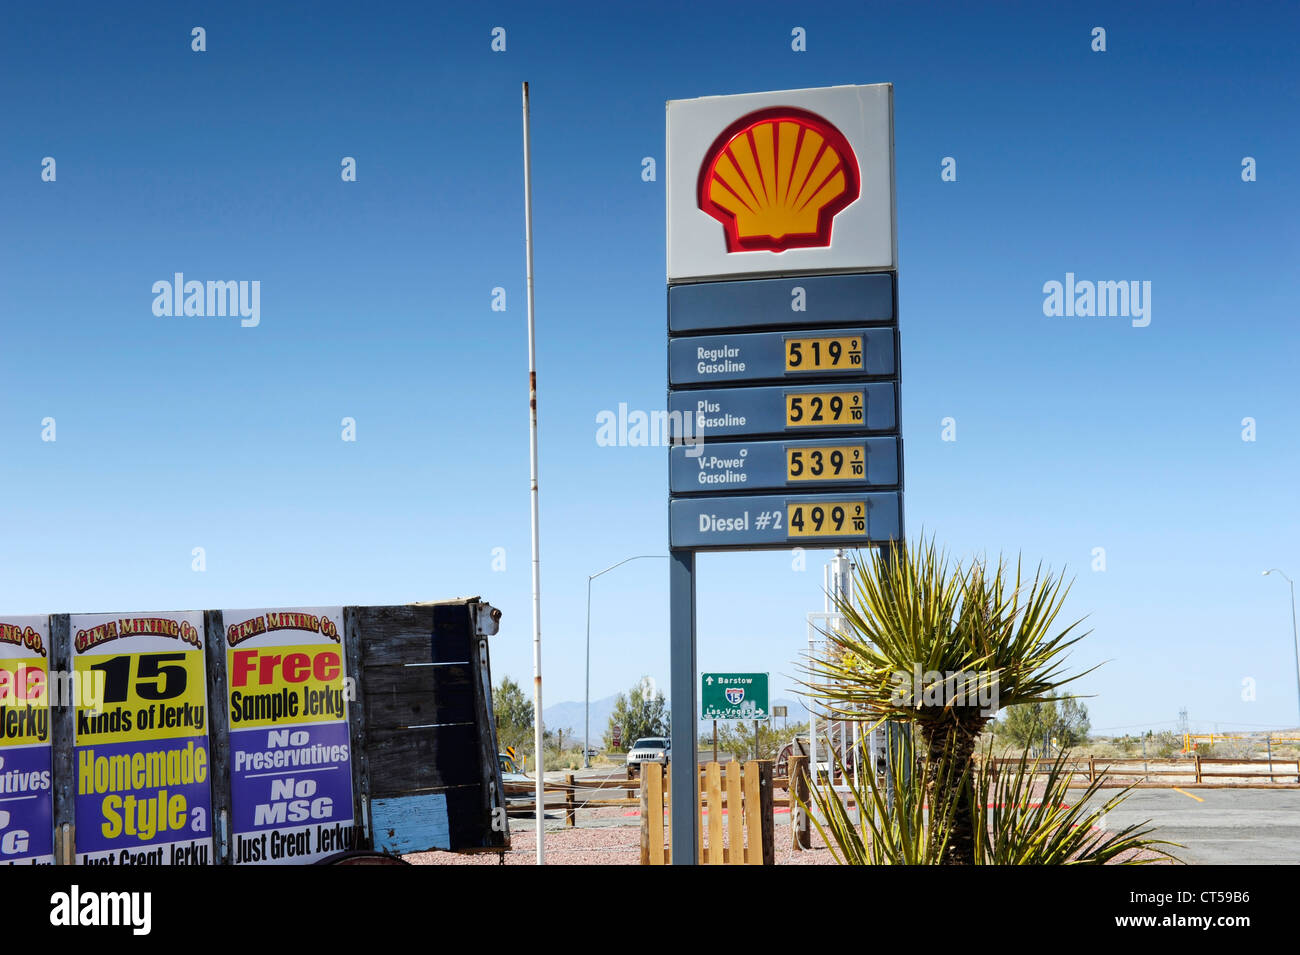 Shell Gas Station Sign Showing Gas Prices Junction Of Interstate 15